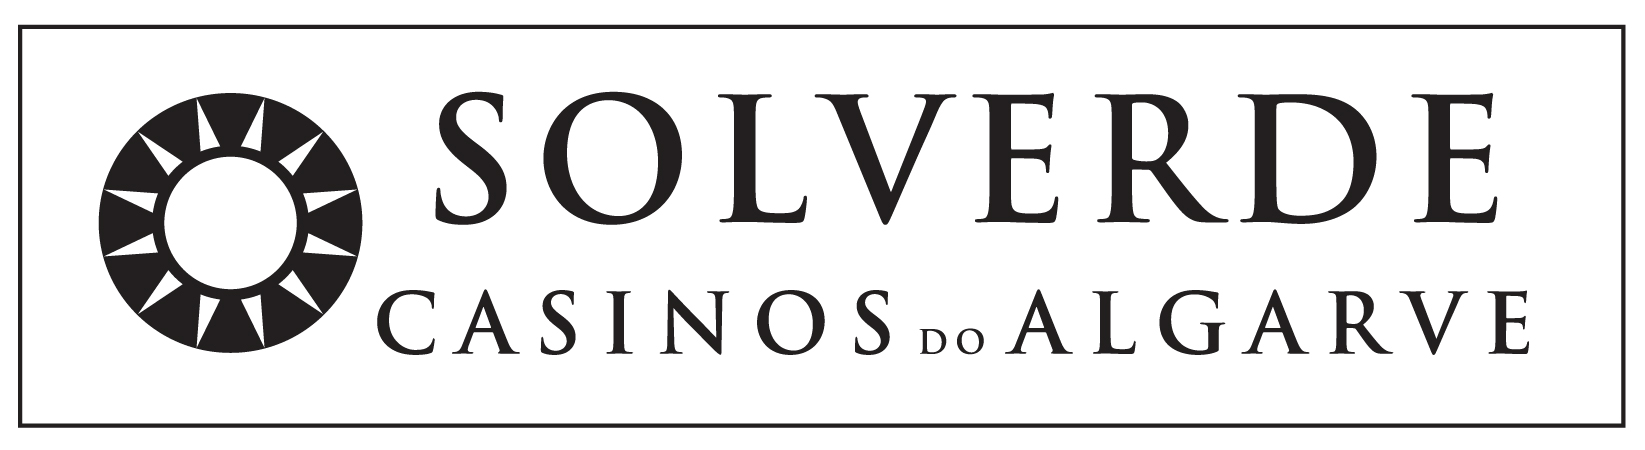 Logo Solverde Casinos do Algarve H 01